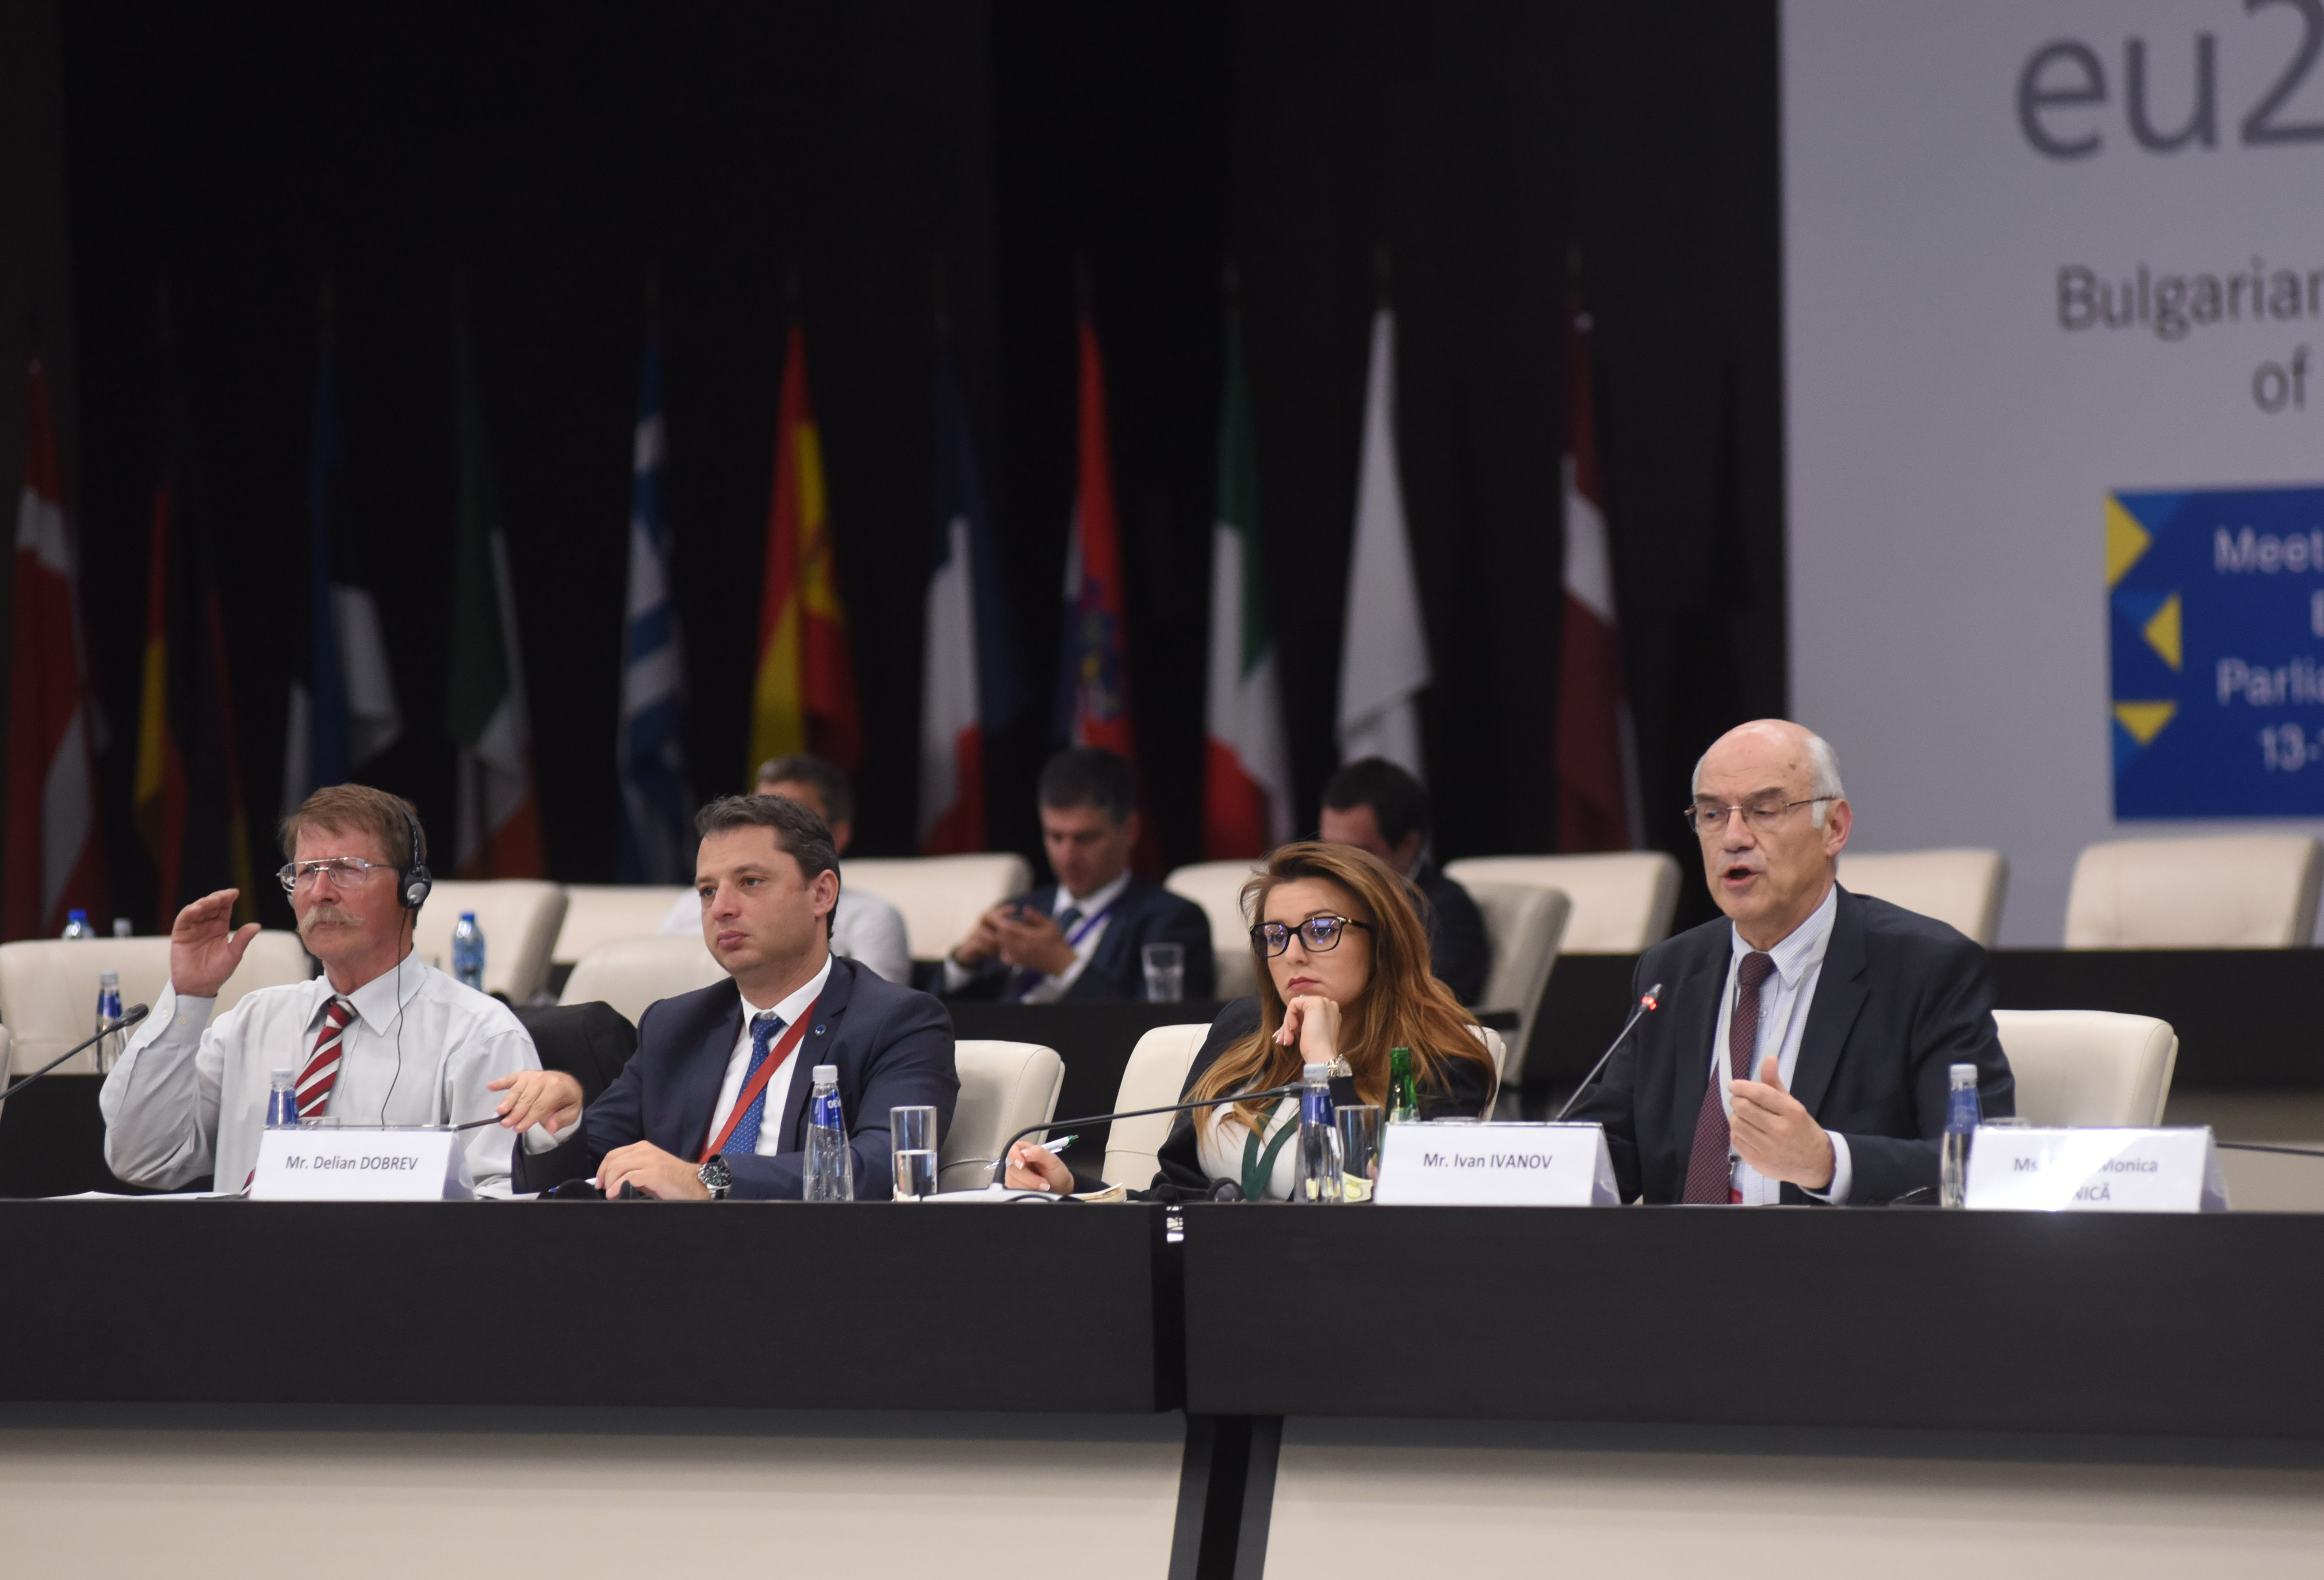 Aiming to be a world leader in renewable energy production, the EU has chosen the right direction, said Ivan Ivanov, Chair of the Energy and Water Regulatory Committee, to the Meeting of the Chairpersons of the Energy Committees of the Parliaments of the European Union